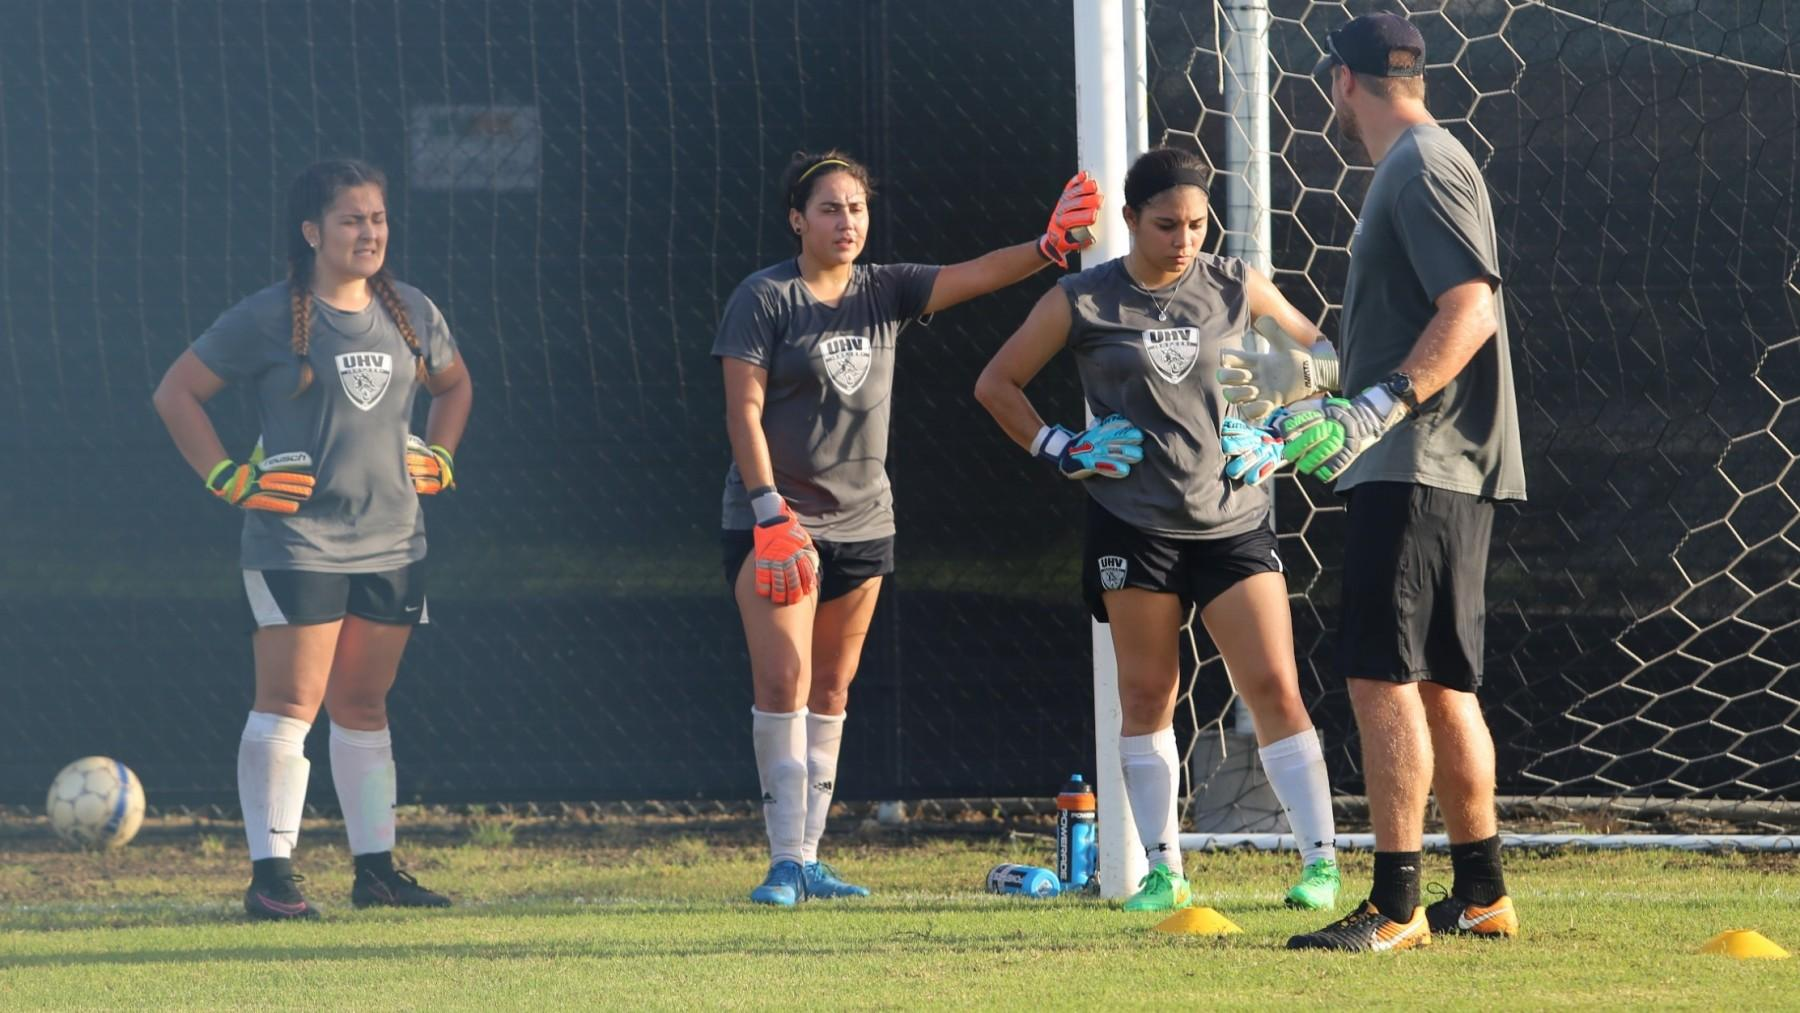 UHV soccer teams enter season unranked